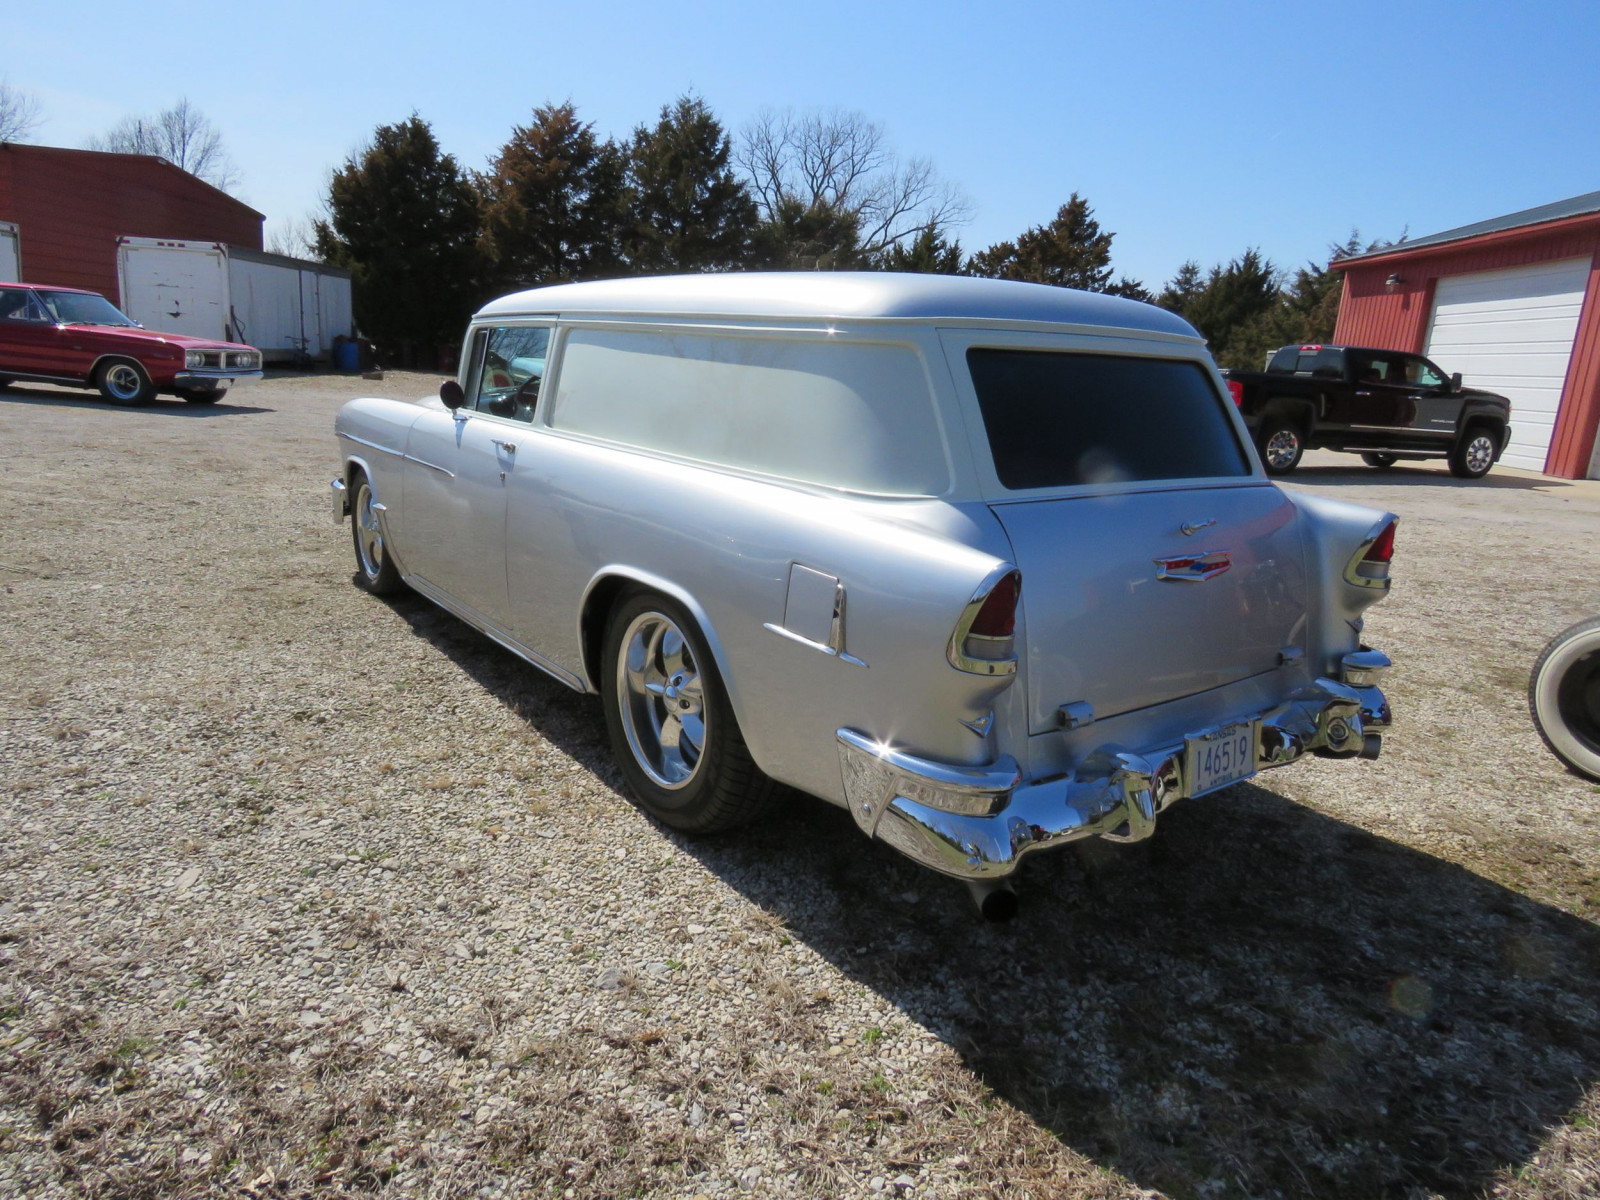 1955 Chevrolet Sedan Delivery Custom - Image 7